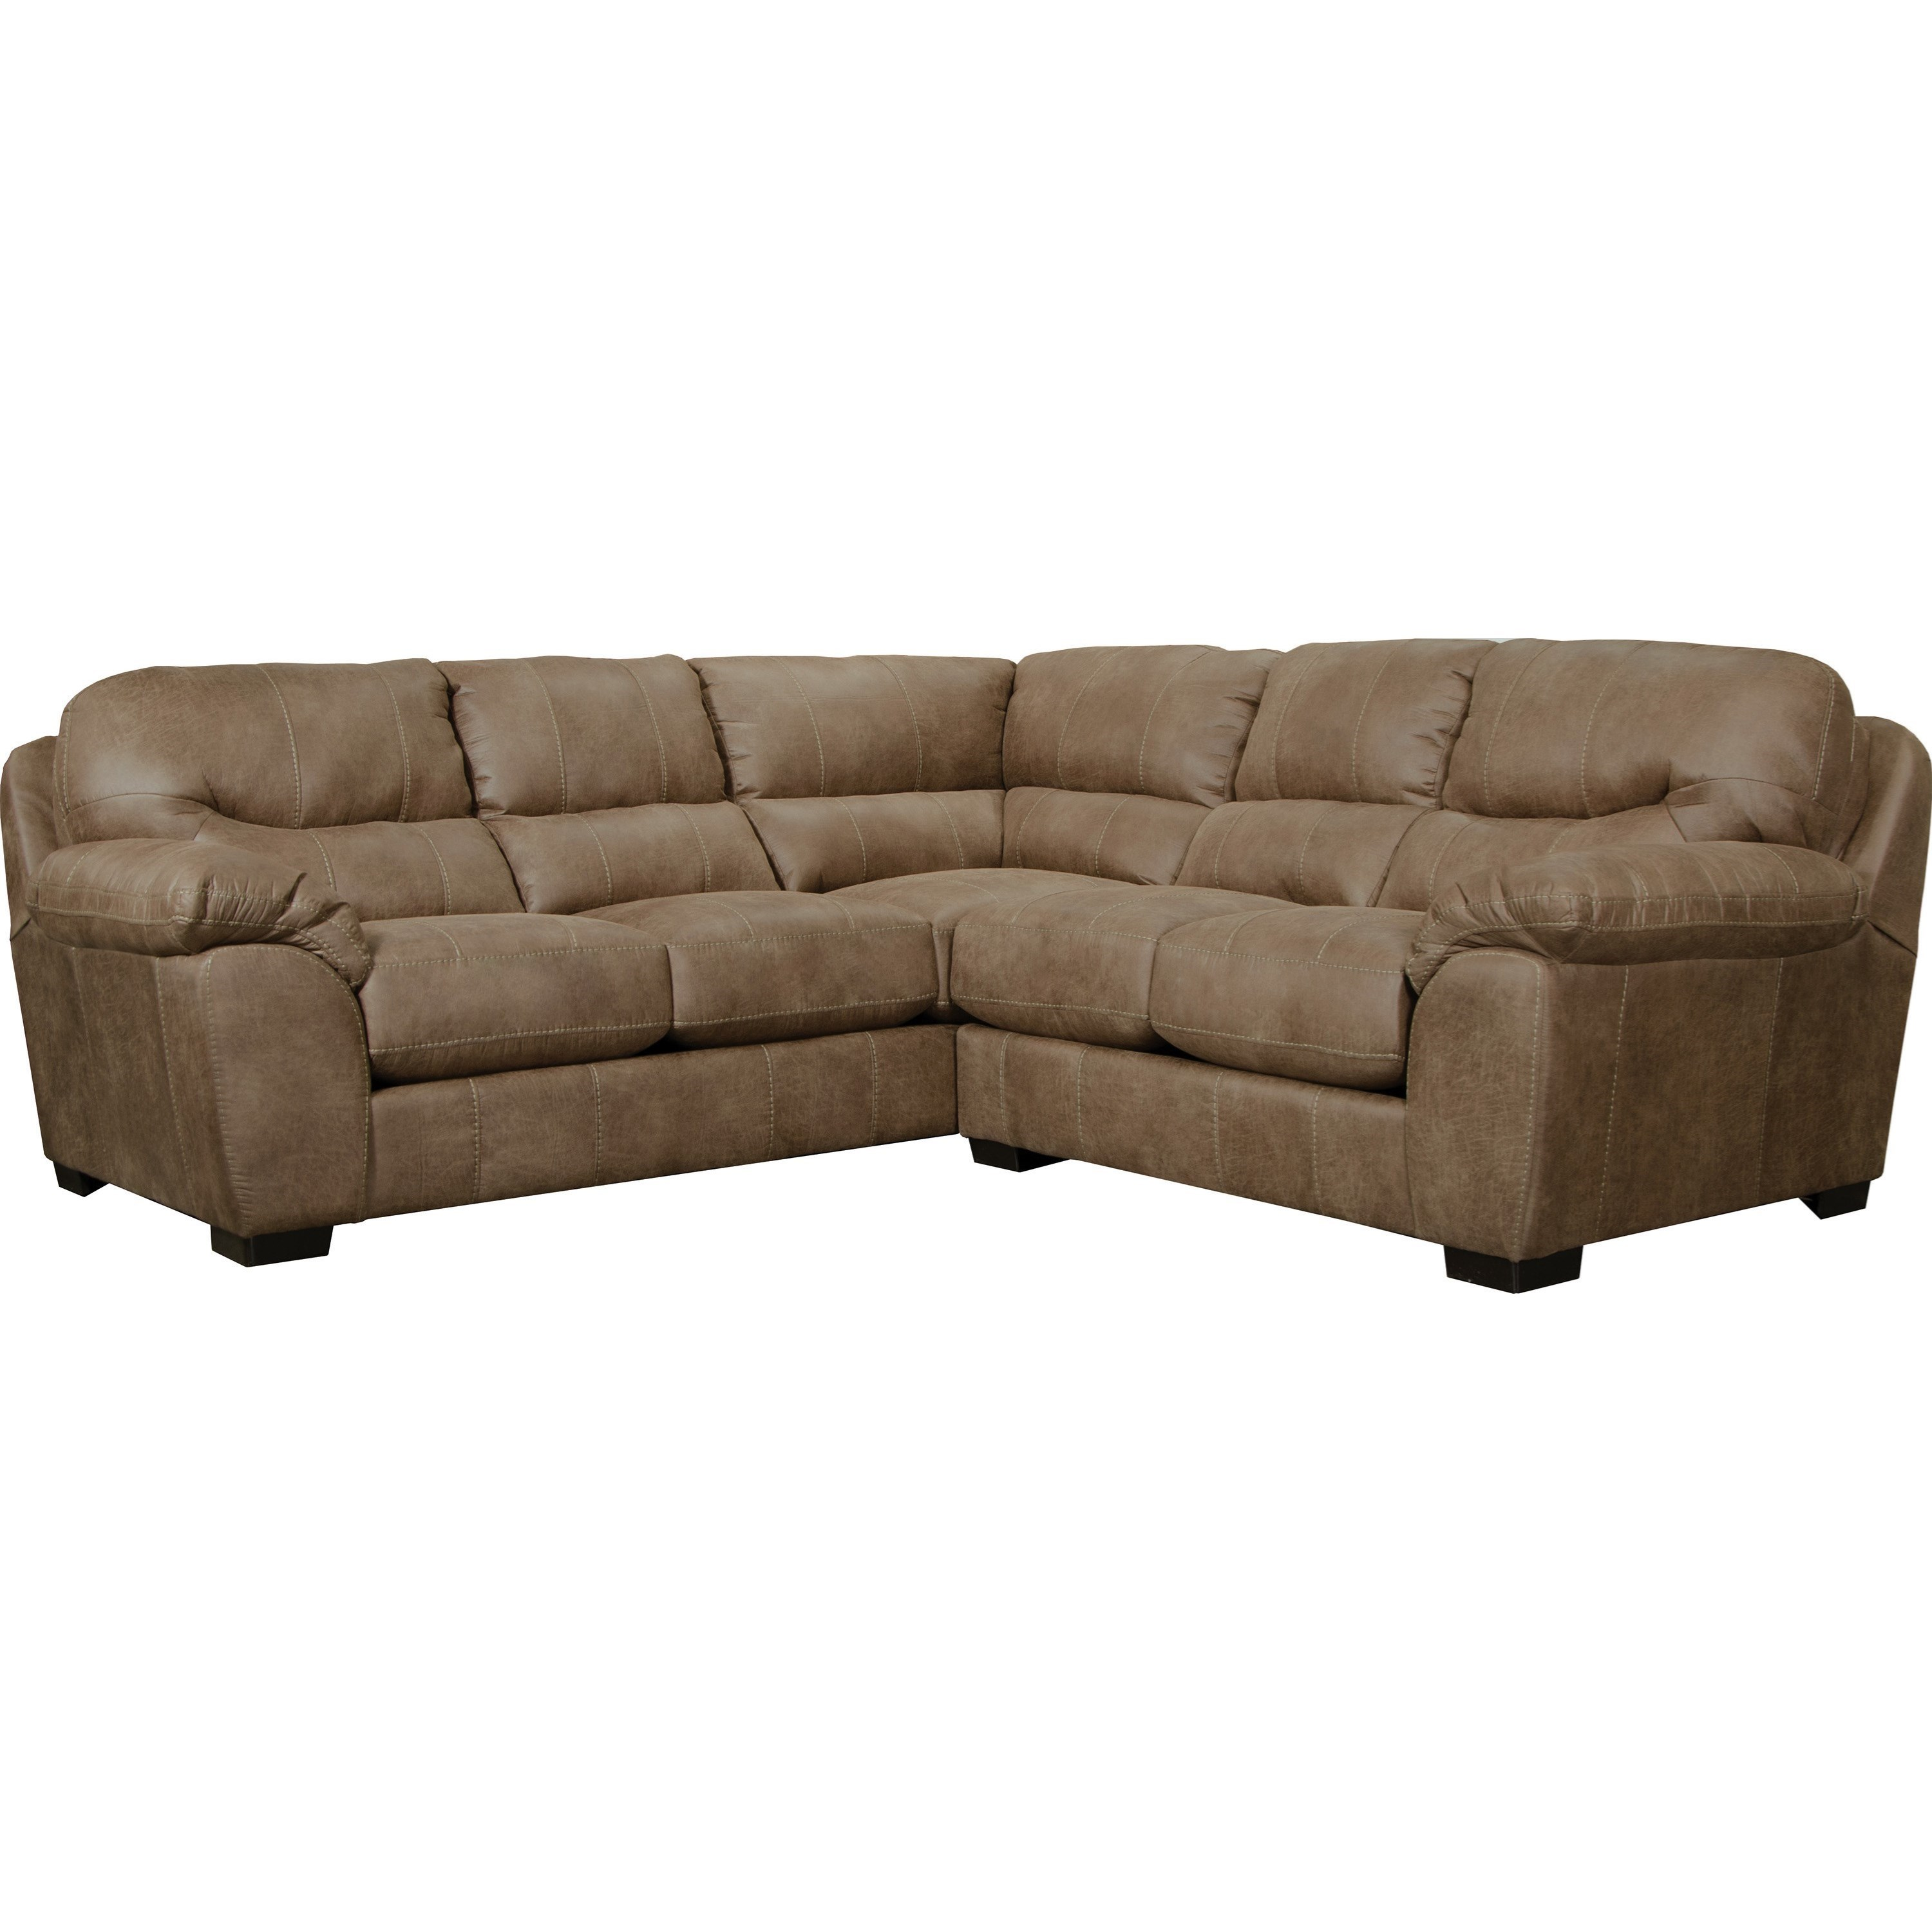 Sectional Sofa by Jackson Furniture